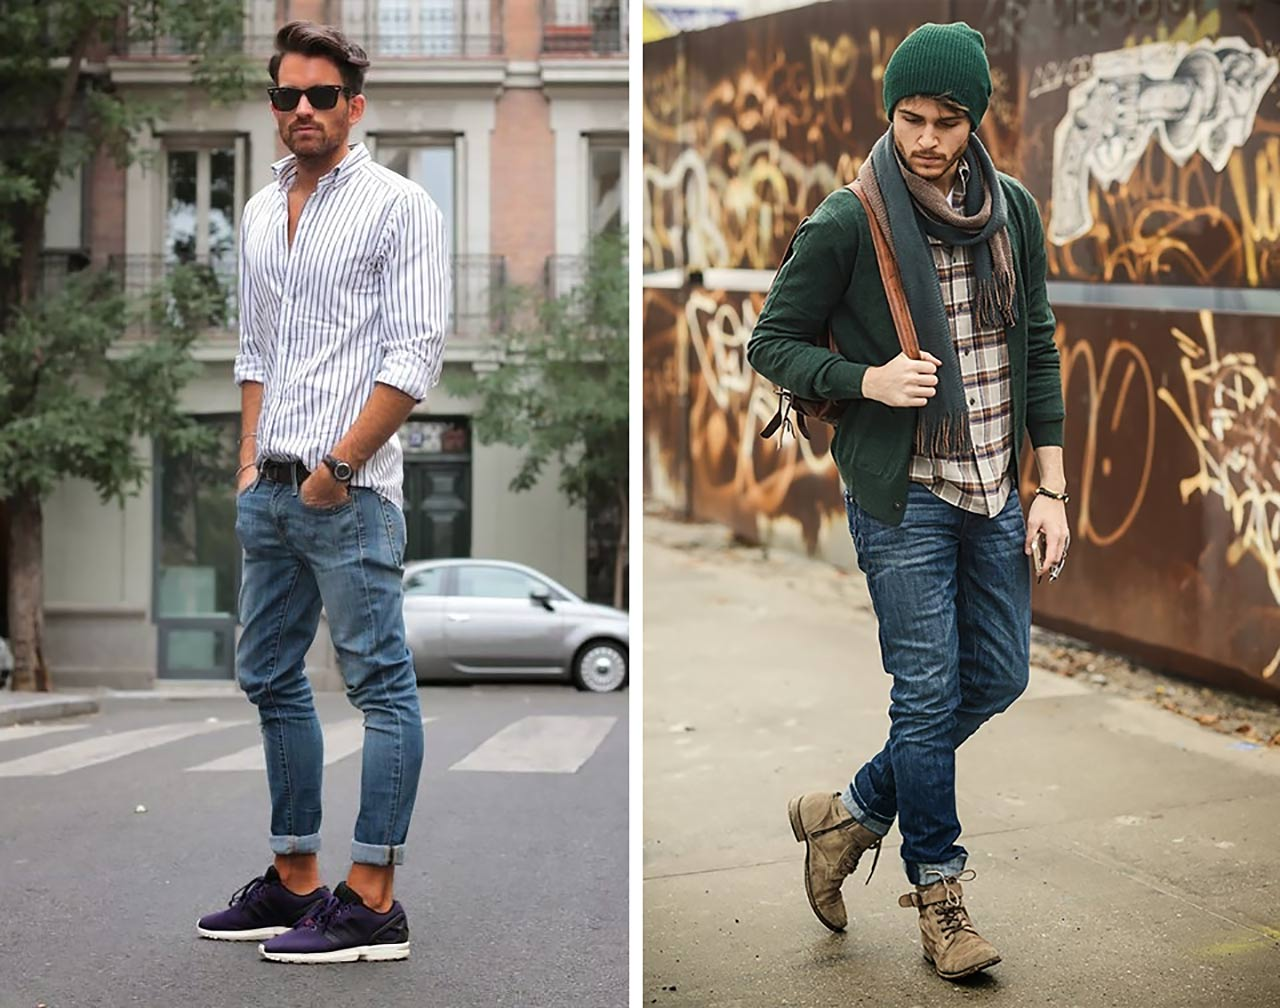 Have Skinny Jeans Become Mainstream For Men? | The Jeans Blog